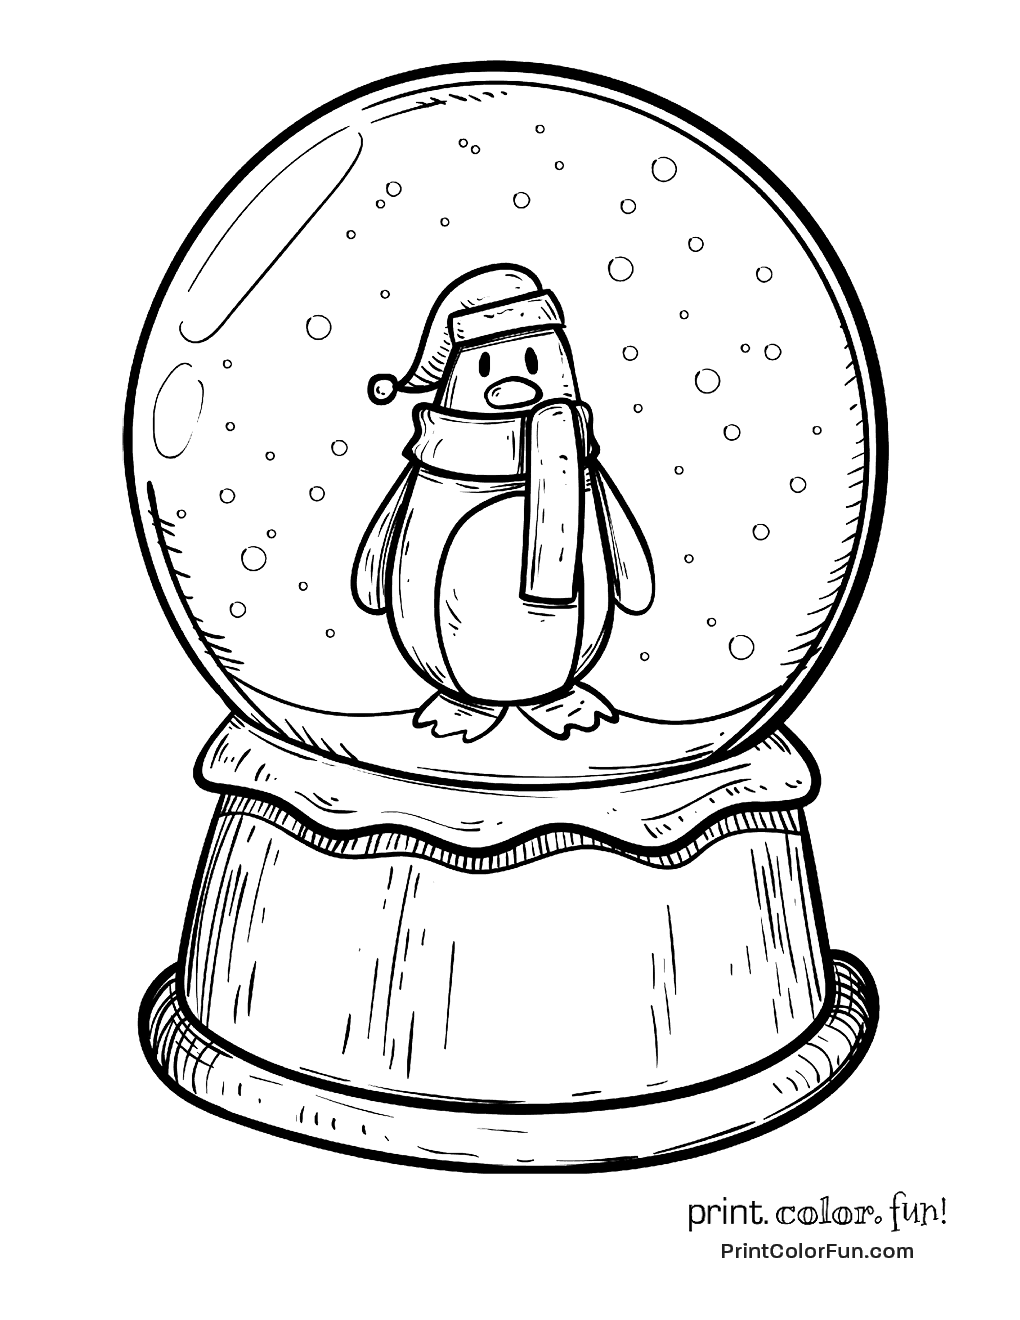 Winter snow globe with a penguin coloring page - Print ...